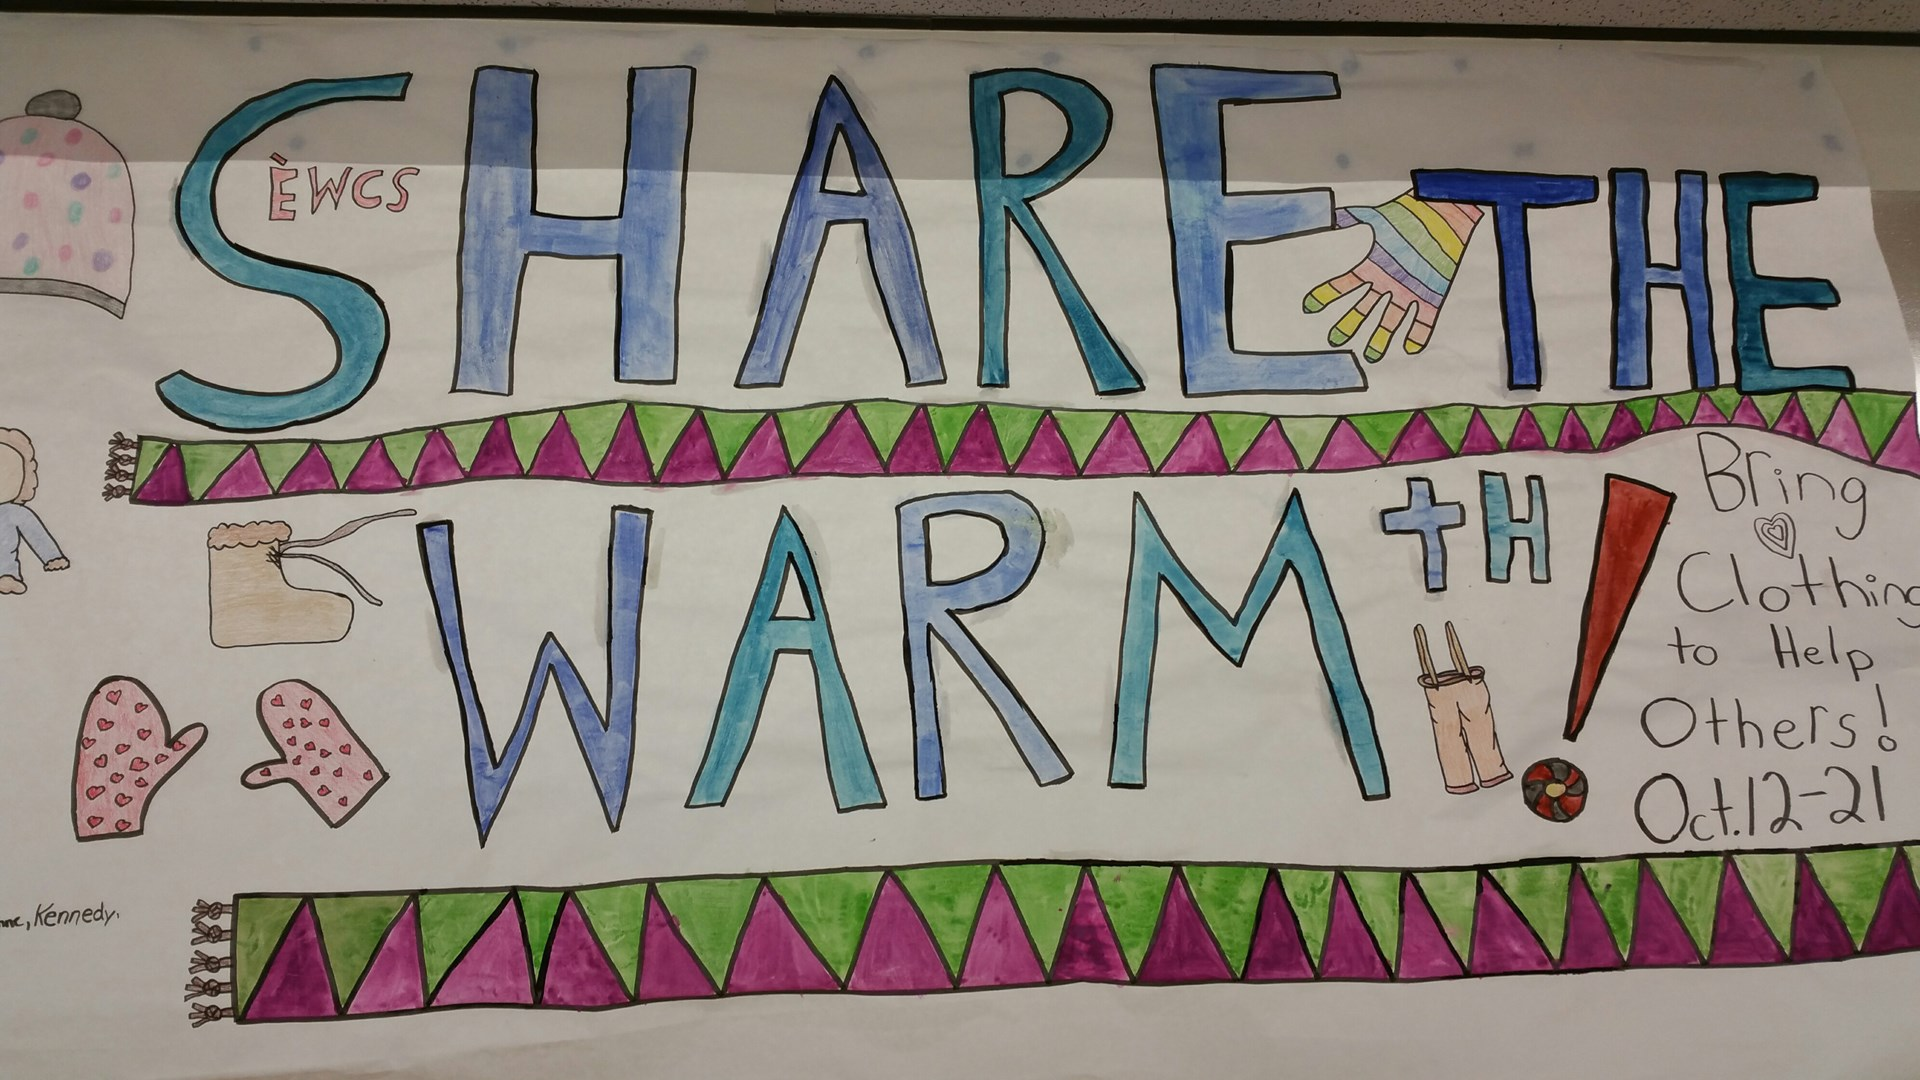 Share the Warmth.jpg